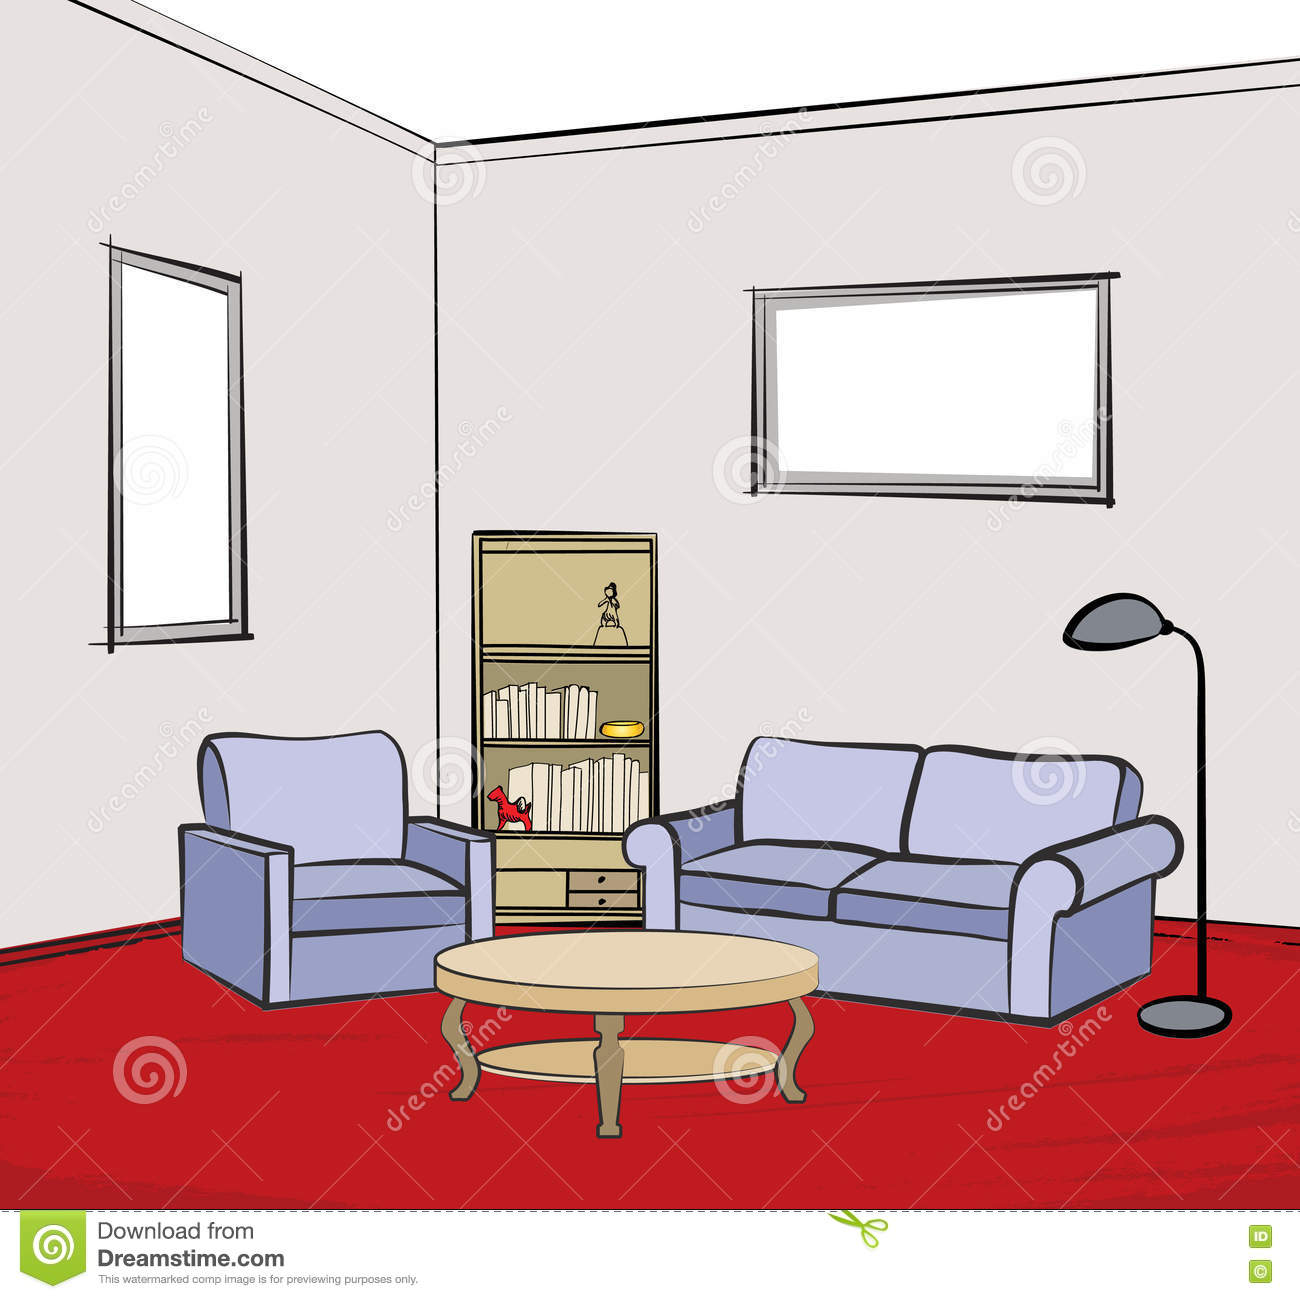 Living room interior design infographic template vector for Furniture templates for room design